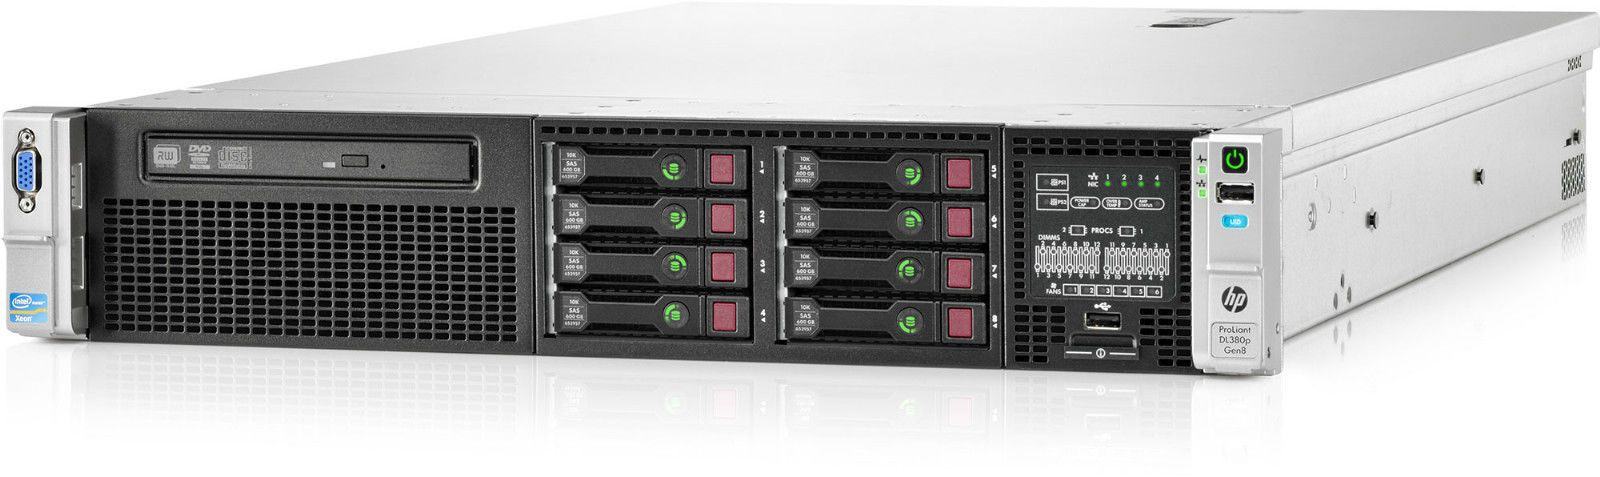 new hp proliant dl380p gen8 v2 2 x xeon e5 2670 2 6ghz 128gb 2u rack server. Black Bedroom Furniture Sets. Home Design Ideas